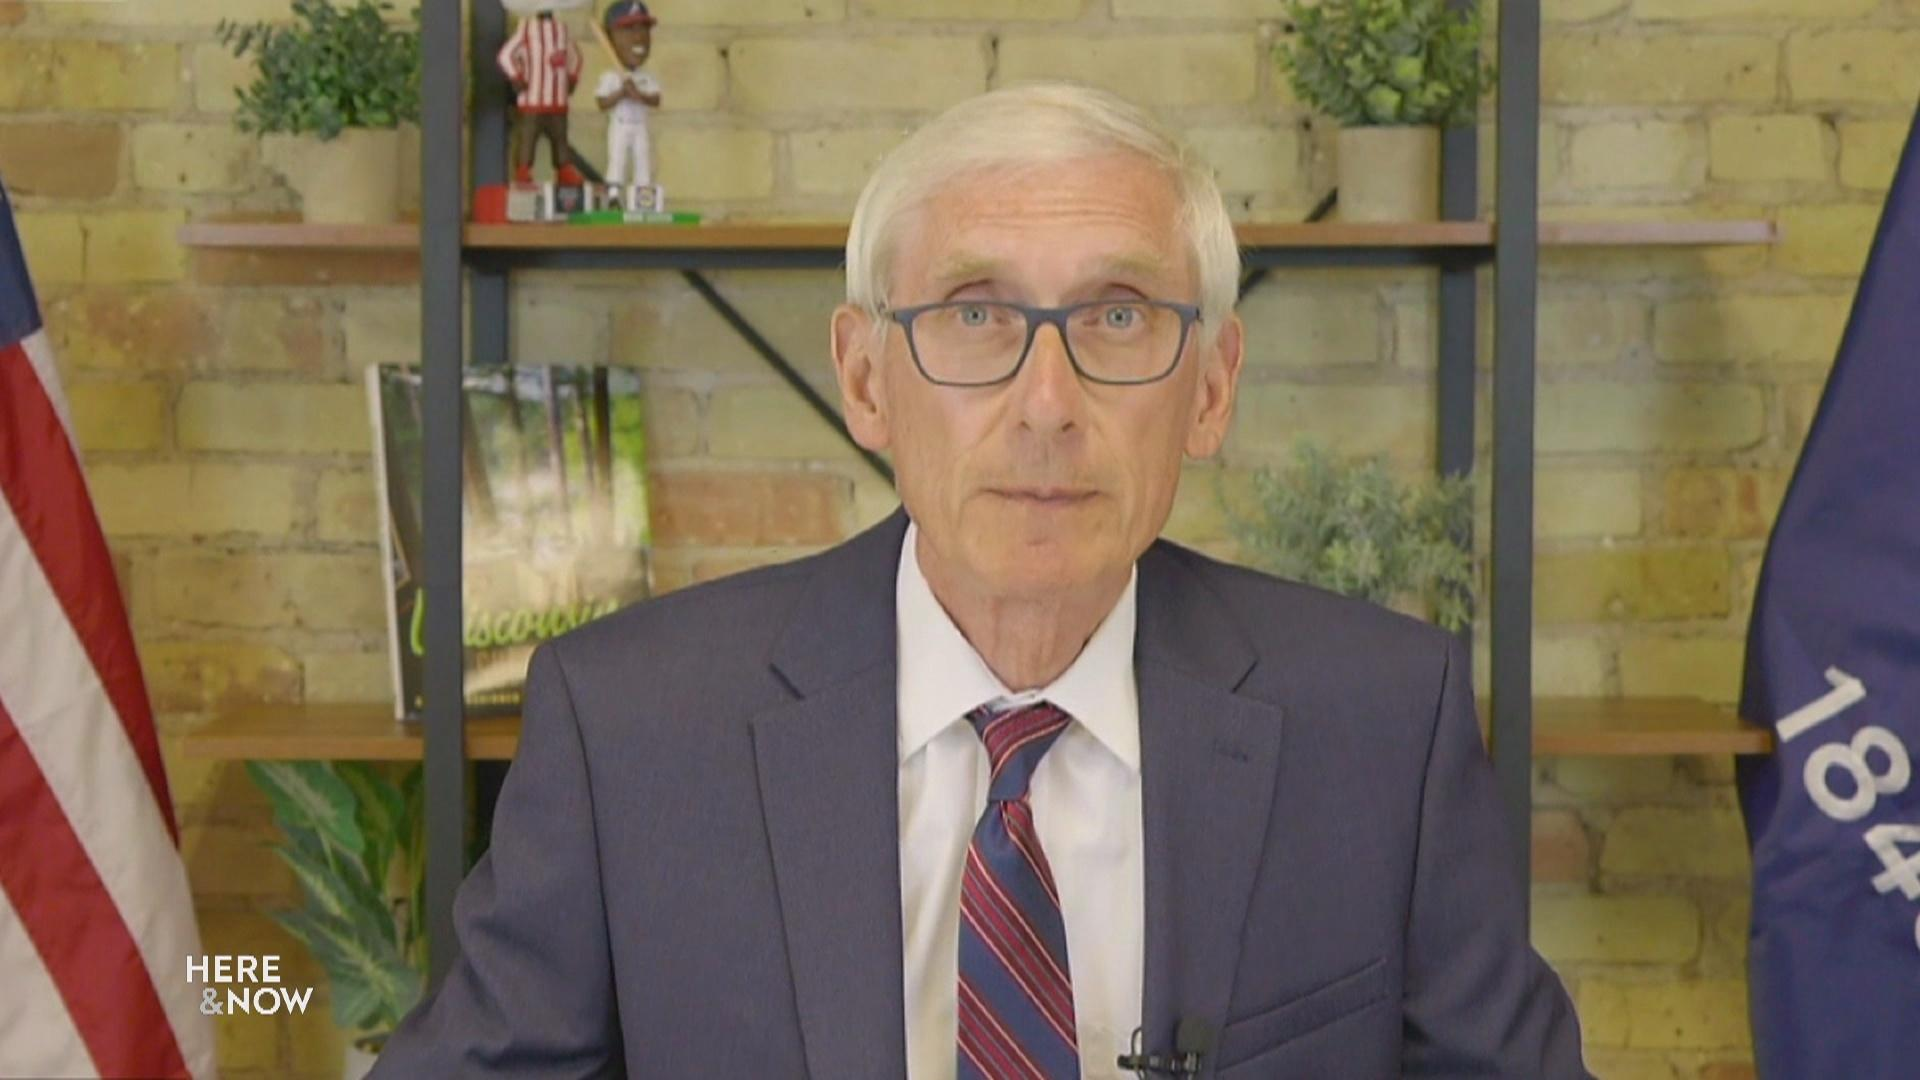 Evers on 2022 Candidacy, Next Steps for State Budget